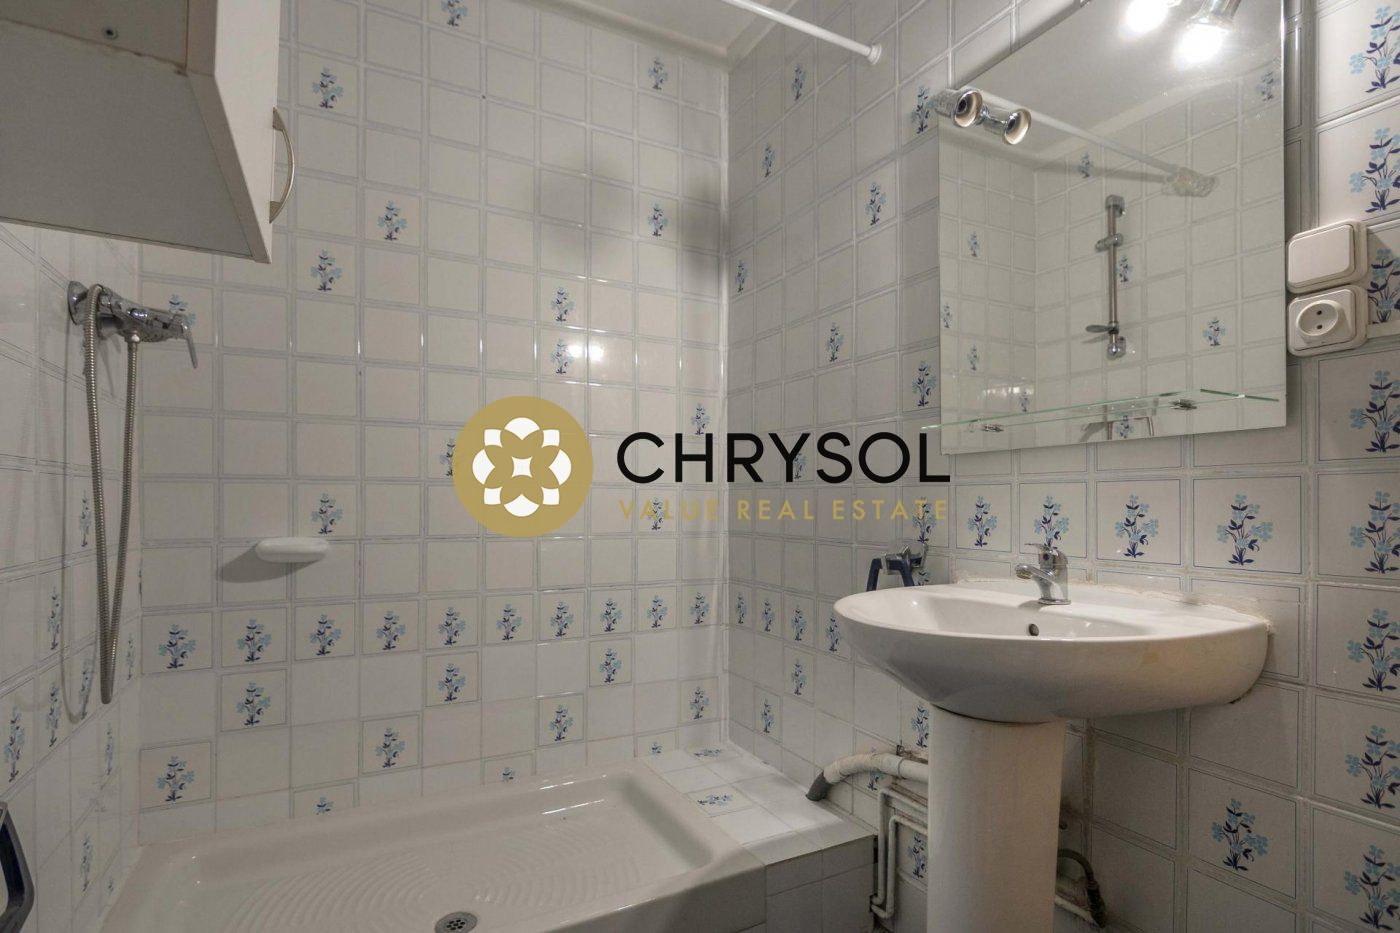 Photogallery - 9 - Chrysol Value